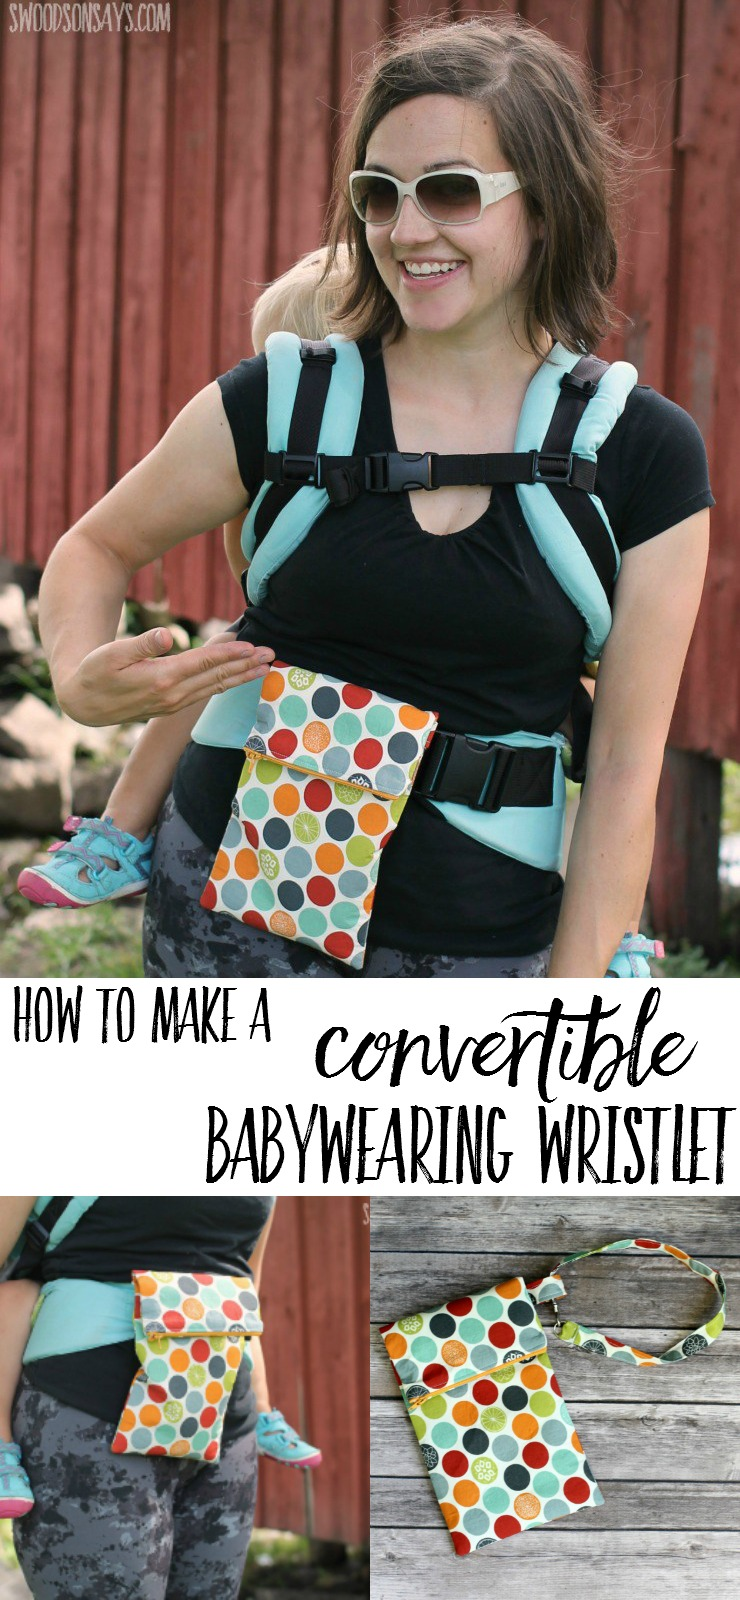 How to sew a convertible wristlet purse that is perfect for babywearing. Babywearing accessories can be expensive to buy, so sew your own bag and slid it on to your waistband for hiking!